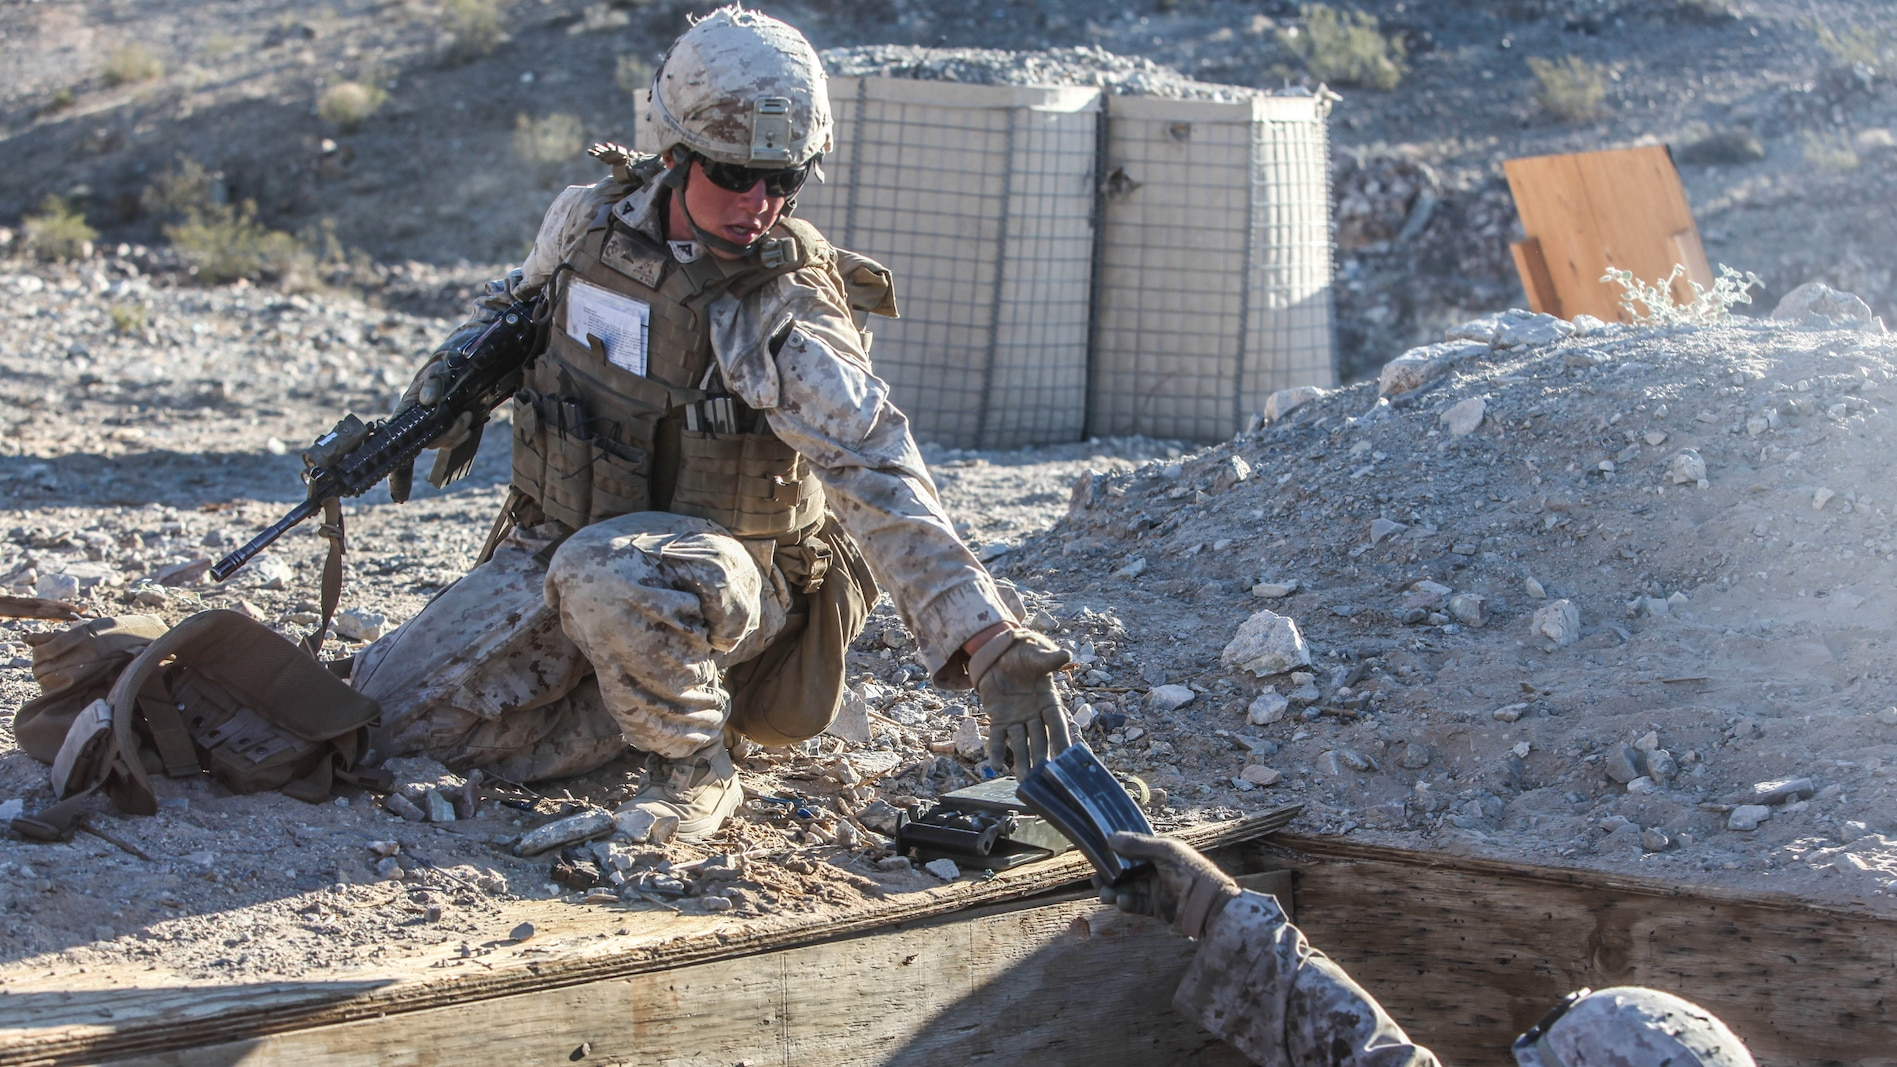 Two Marines with 1st Platoon, Company C, 1st Battalion, 7th Marines, distribute ammunition during platoon attack drills, July 24, aboard Marine Corps Air Ground Combat Center Twentynine Palms, Calif. Training began for the Marines of Company C with a combined arms fire and maneuver exercise as part of their Integrated Training Exercise in preparation for their upcoming deployment with Special Purpose Marine Corps Air Ground Task Force Crisis Response Central Command 16.1 scheduled to depart later this year.